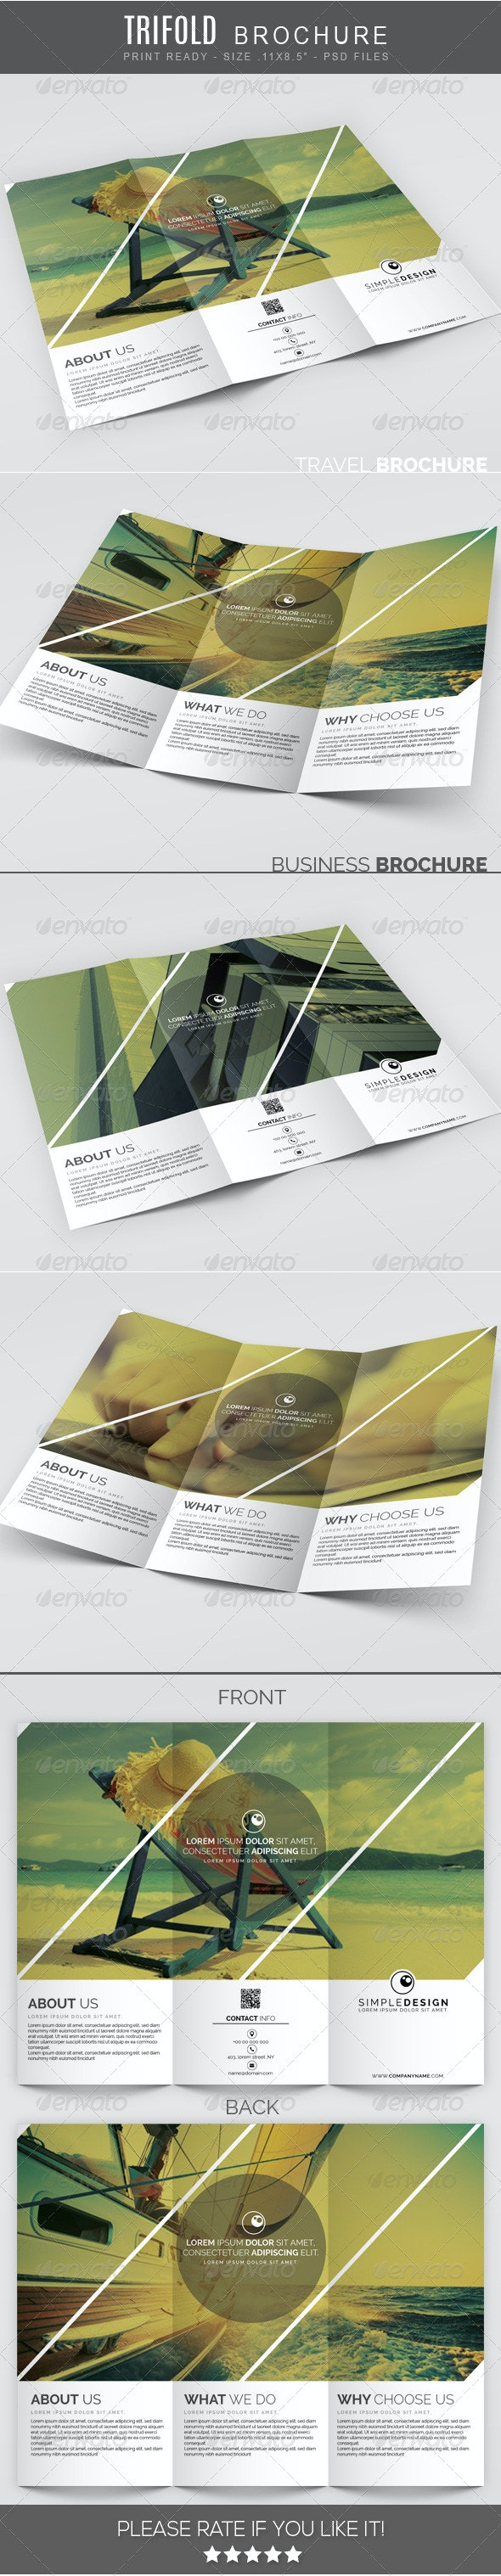 Travel multipurpose Trifold Brochure - Corporate Brochures